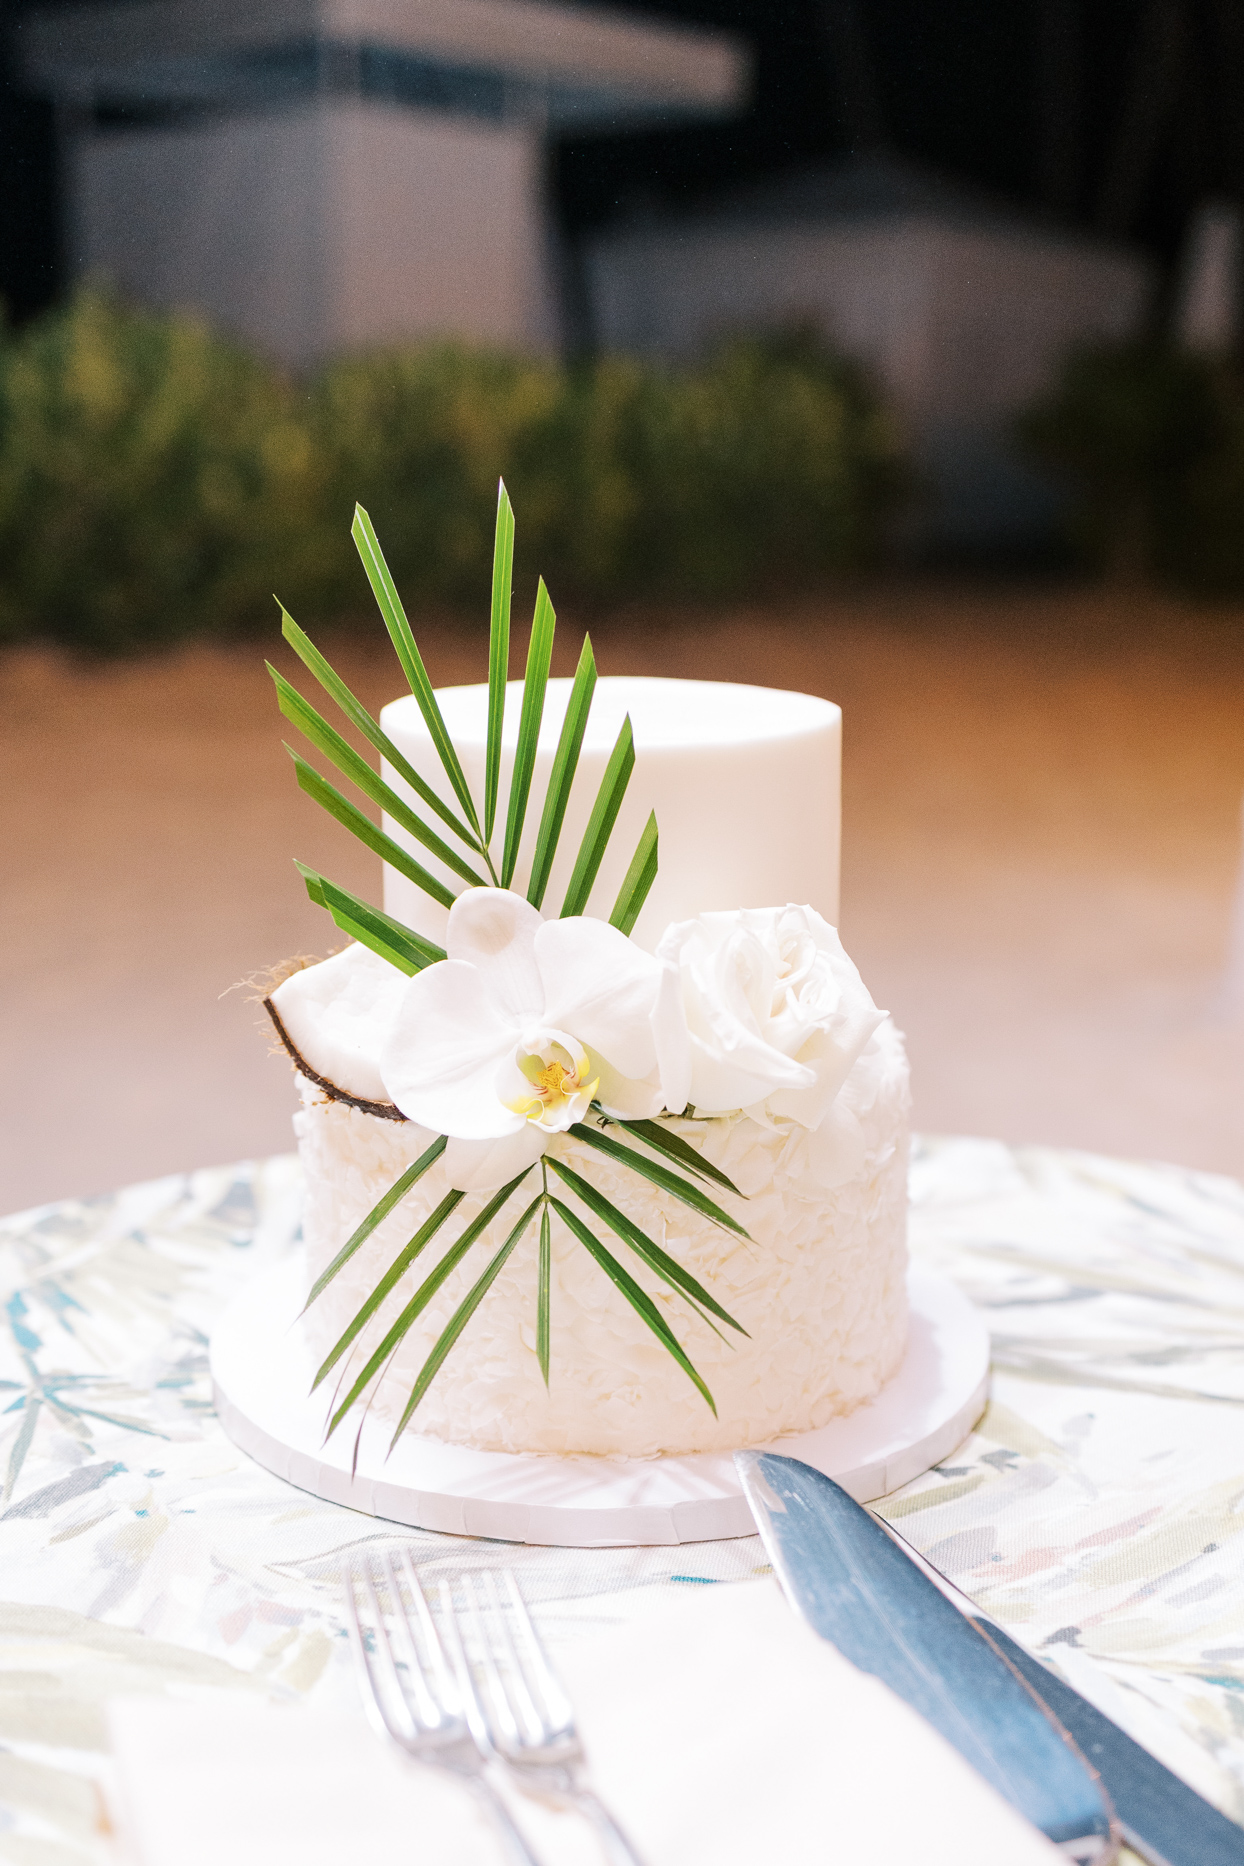 wedding cake with coconut flakes, palm branch, and white orchid